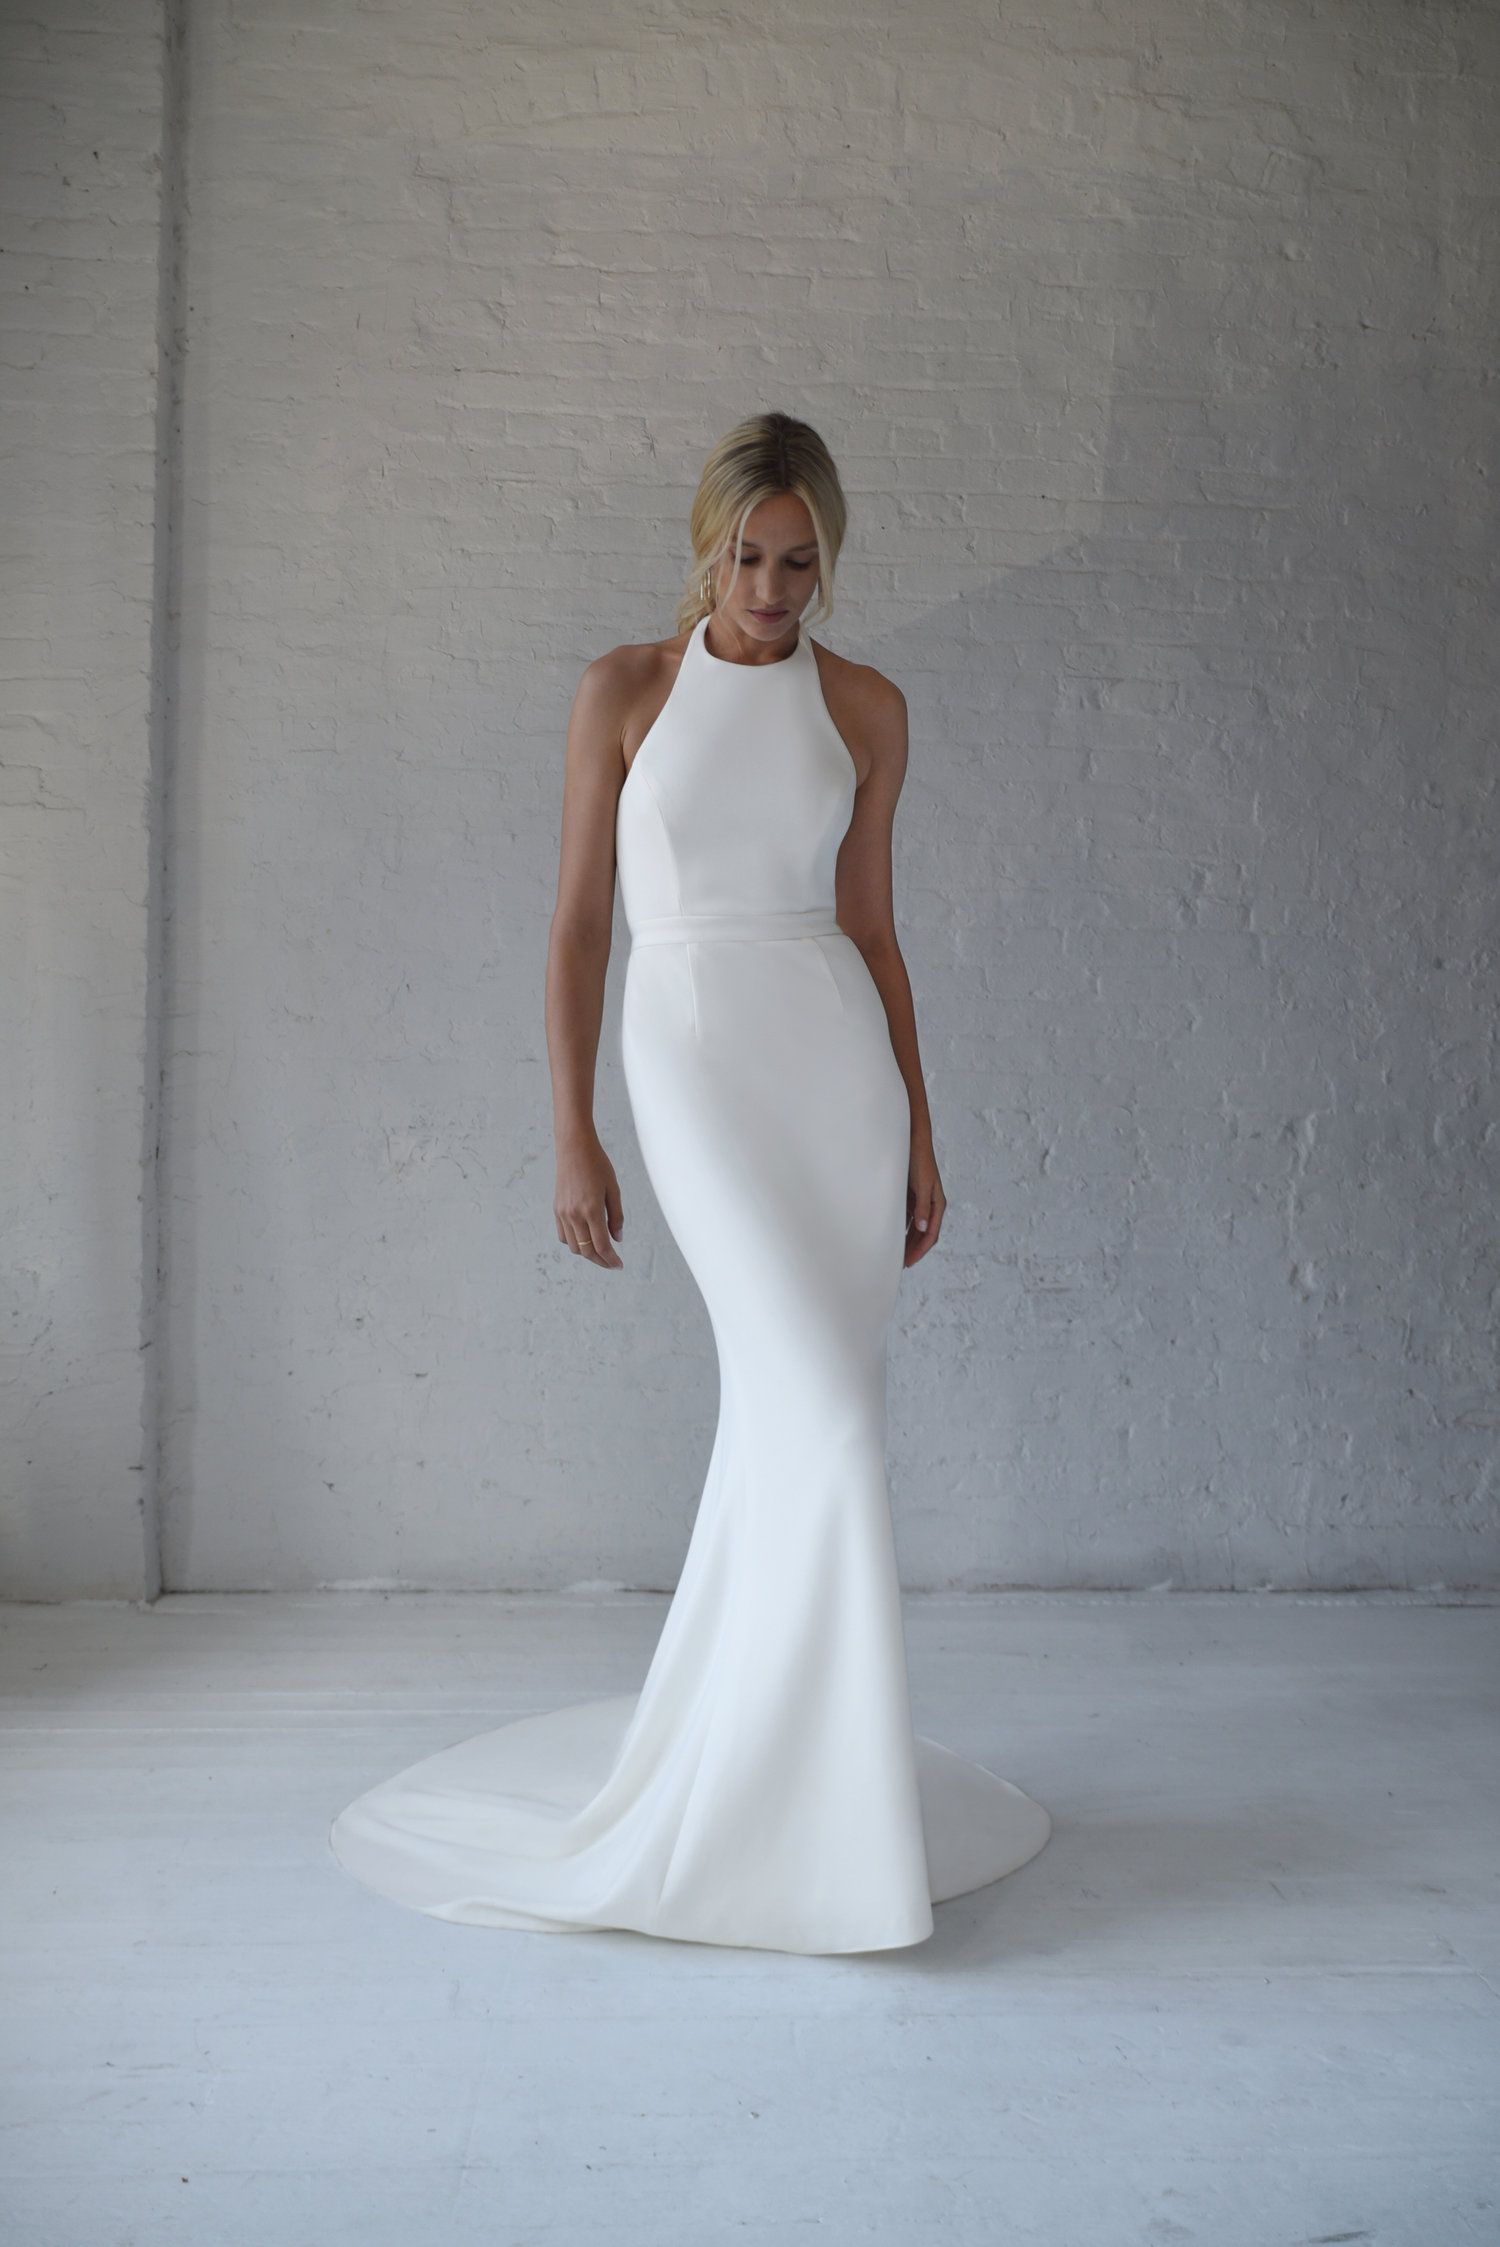 Modern And Sleek White Wedding Dress In Light Weight Stretchy Scuba Material Perfect For